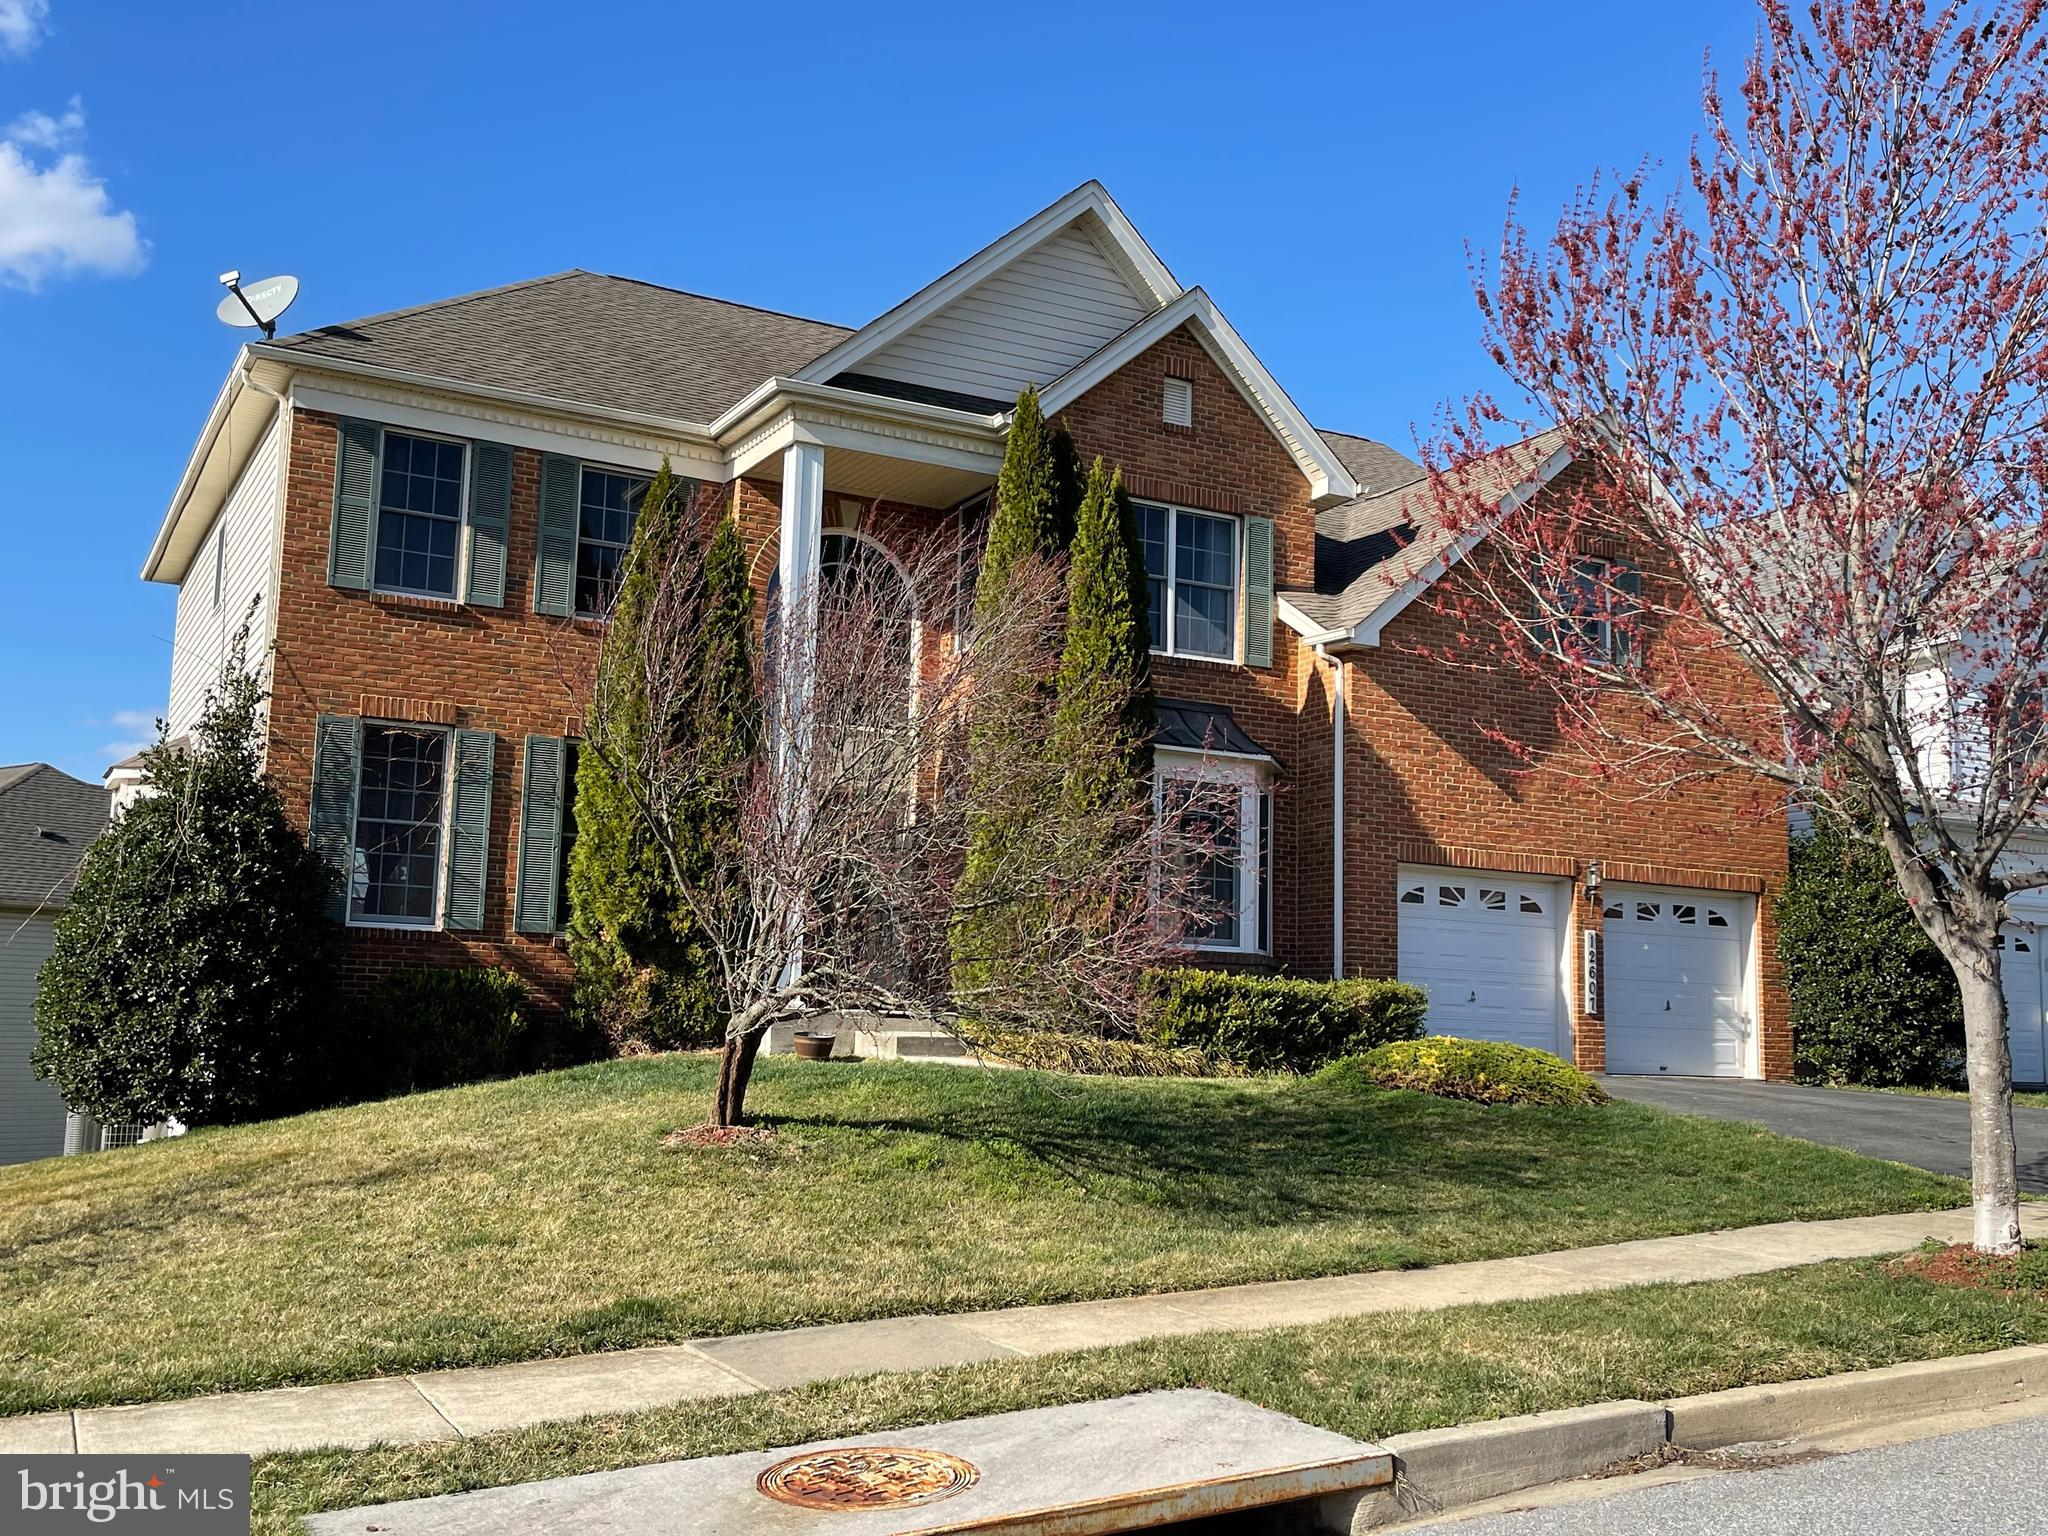 Welcome to this beautiful brick colonial built by Toll Brothers.  This home features 4 bedrooms, 3.5